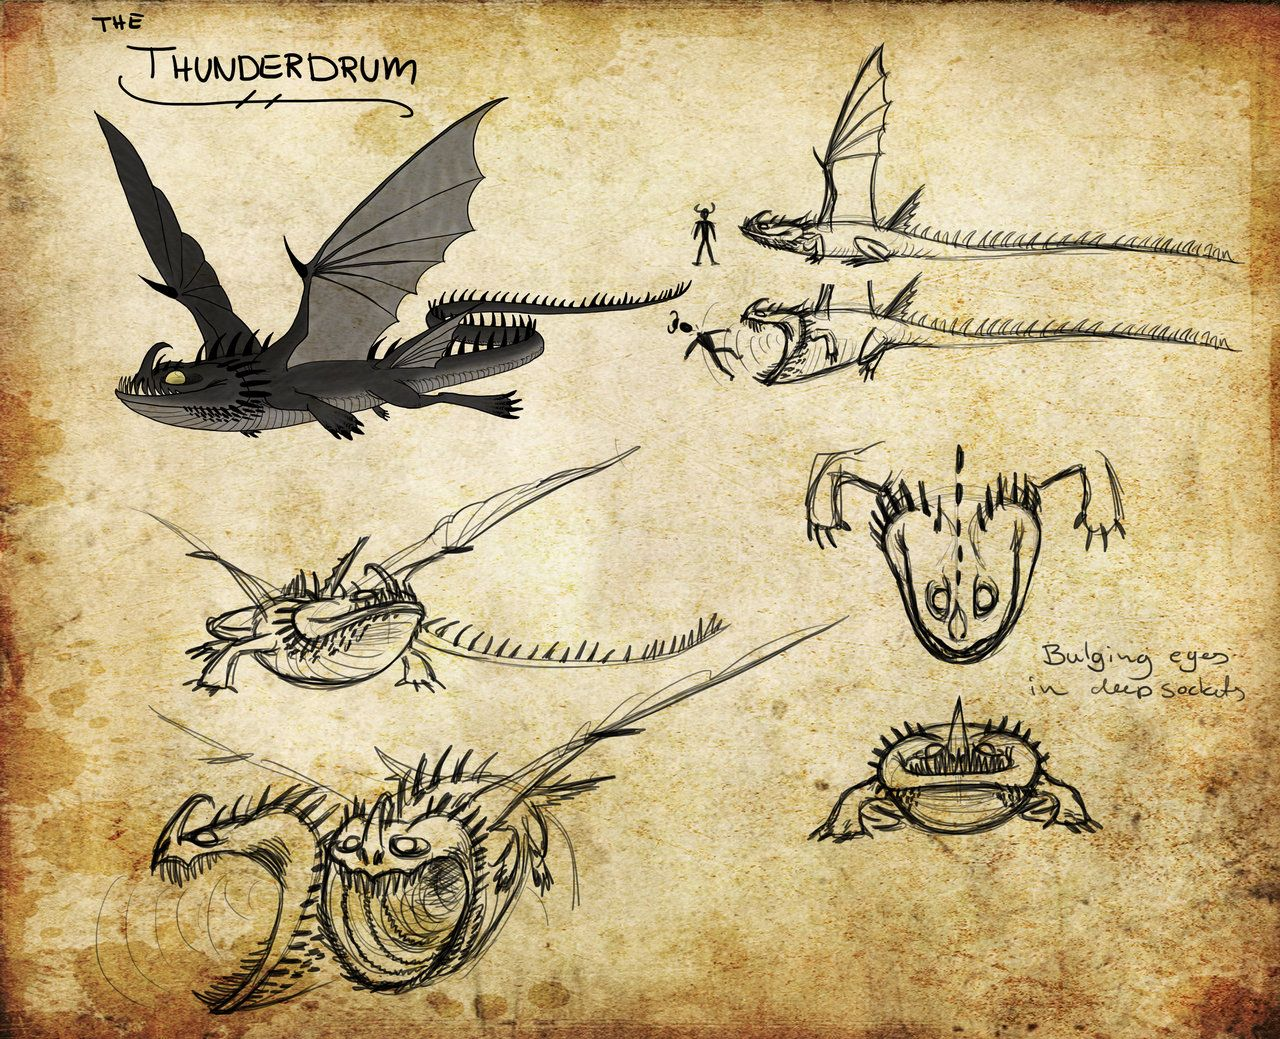 HTTYD: Thunderdrum by Iceway on deviantART   How train ...